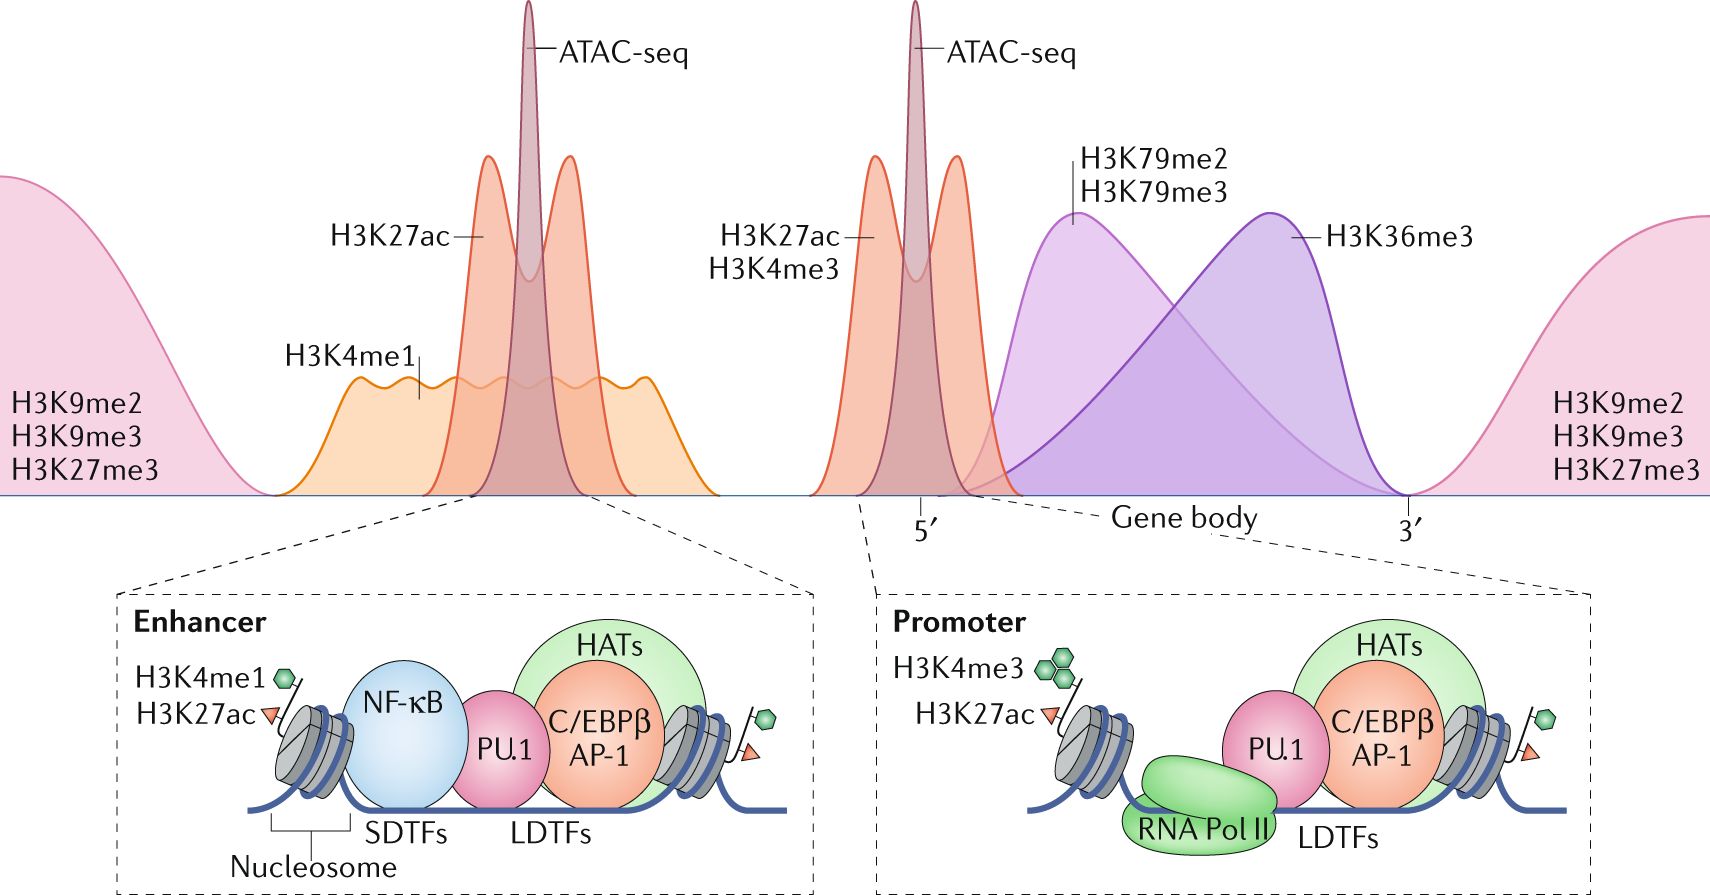 Transcriptional and epigenetic regulation of macrophages in atheroscle